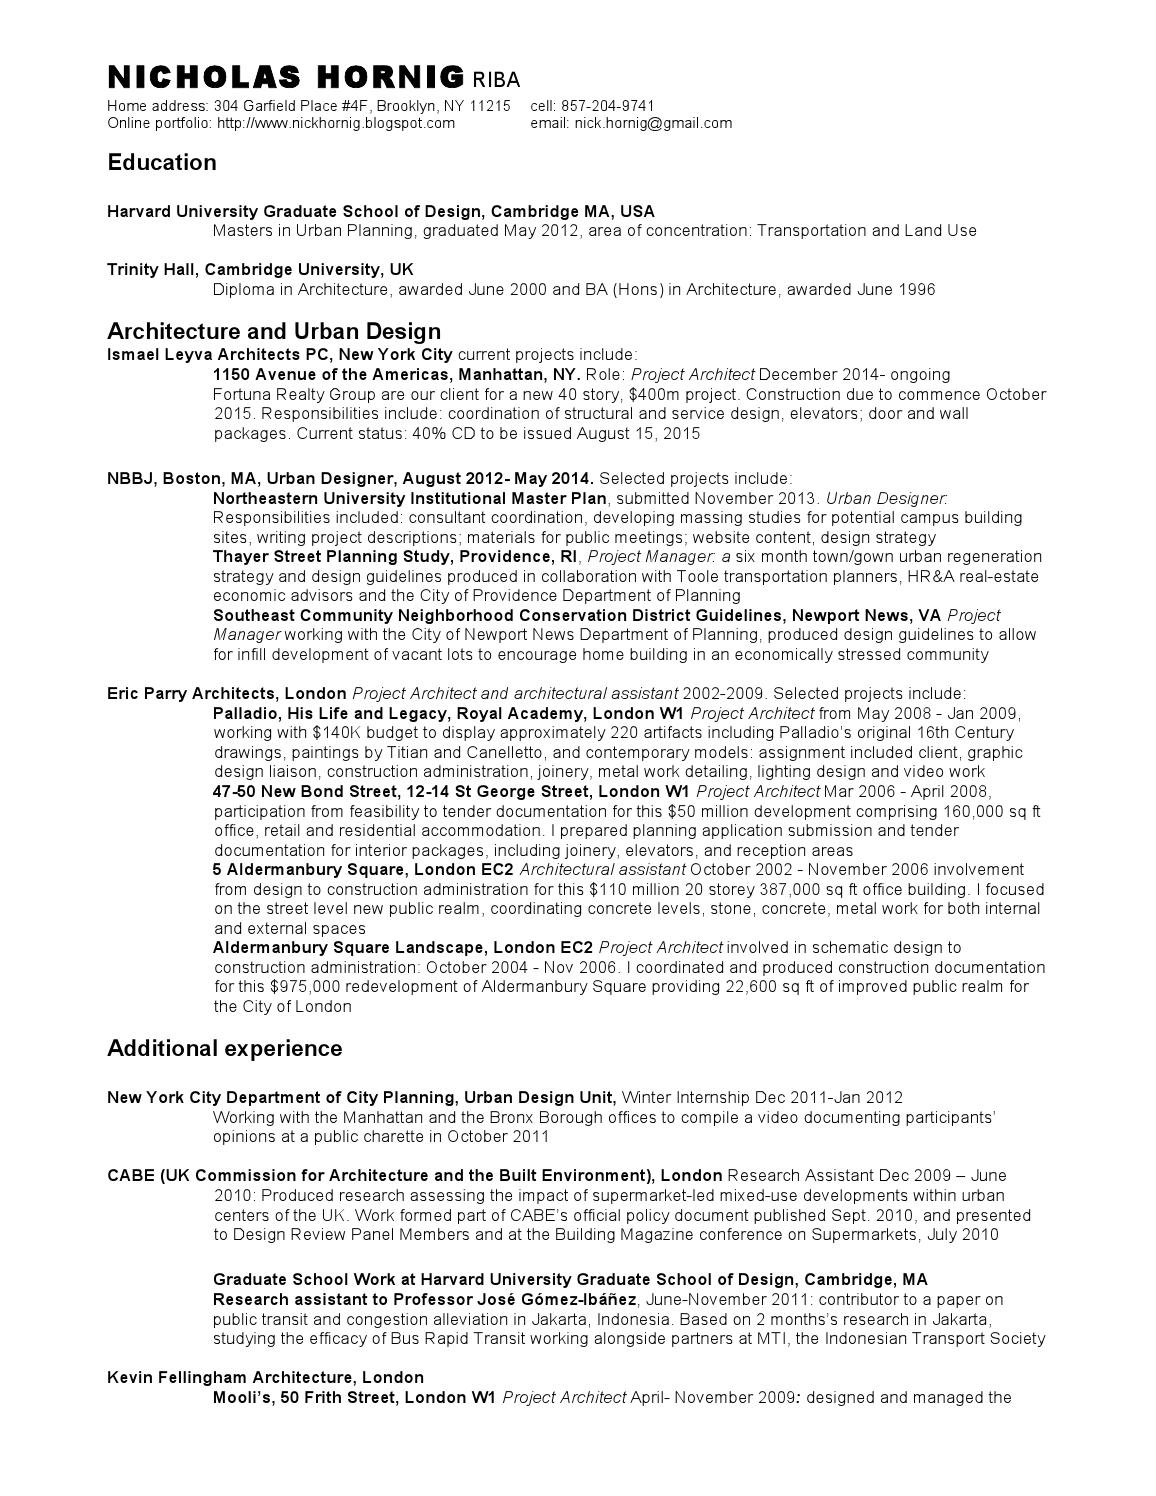 nicholas hornig s resume by nick hornig issuu